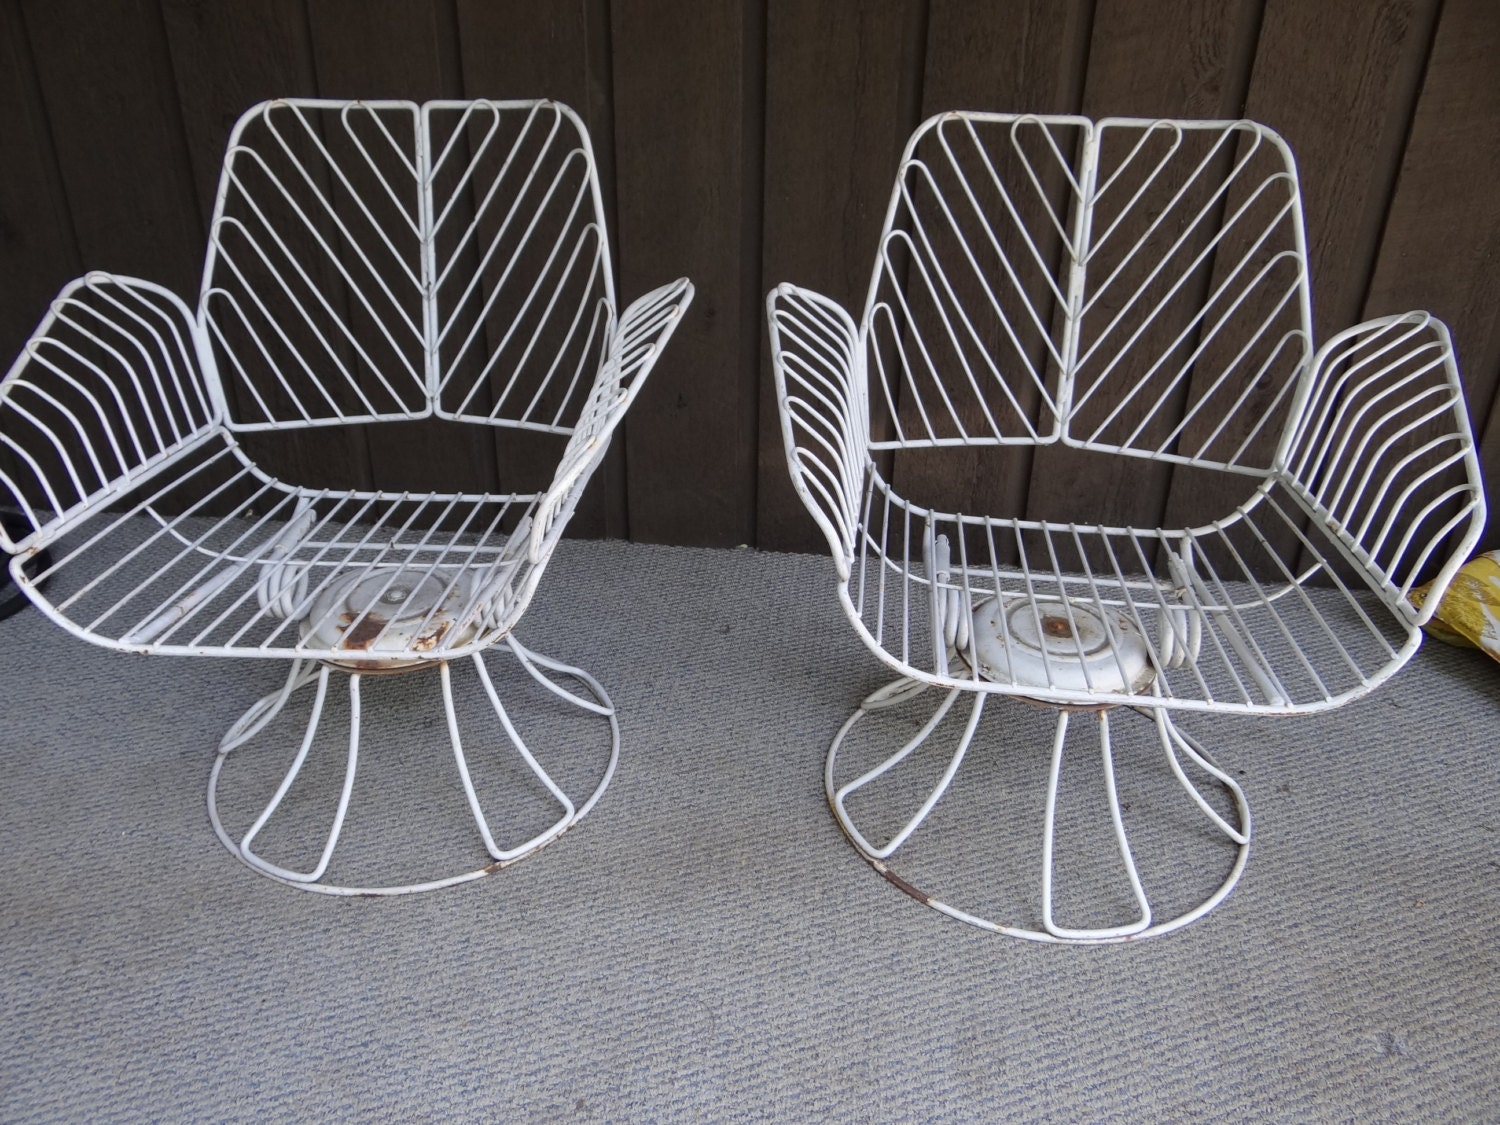 Homecrest metal swivel patio chairs Vintage wrought iron mid